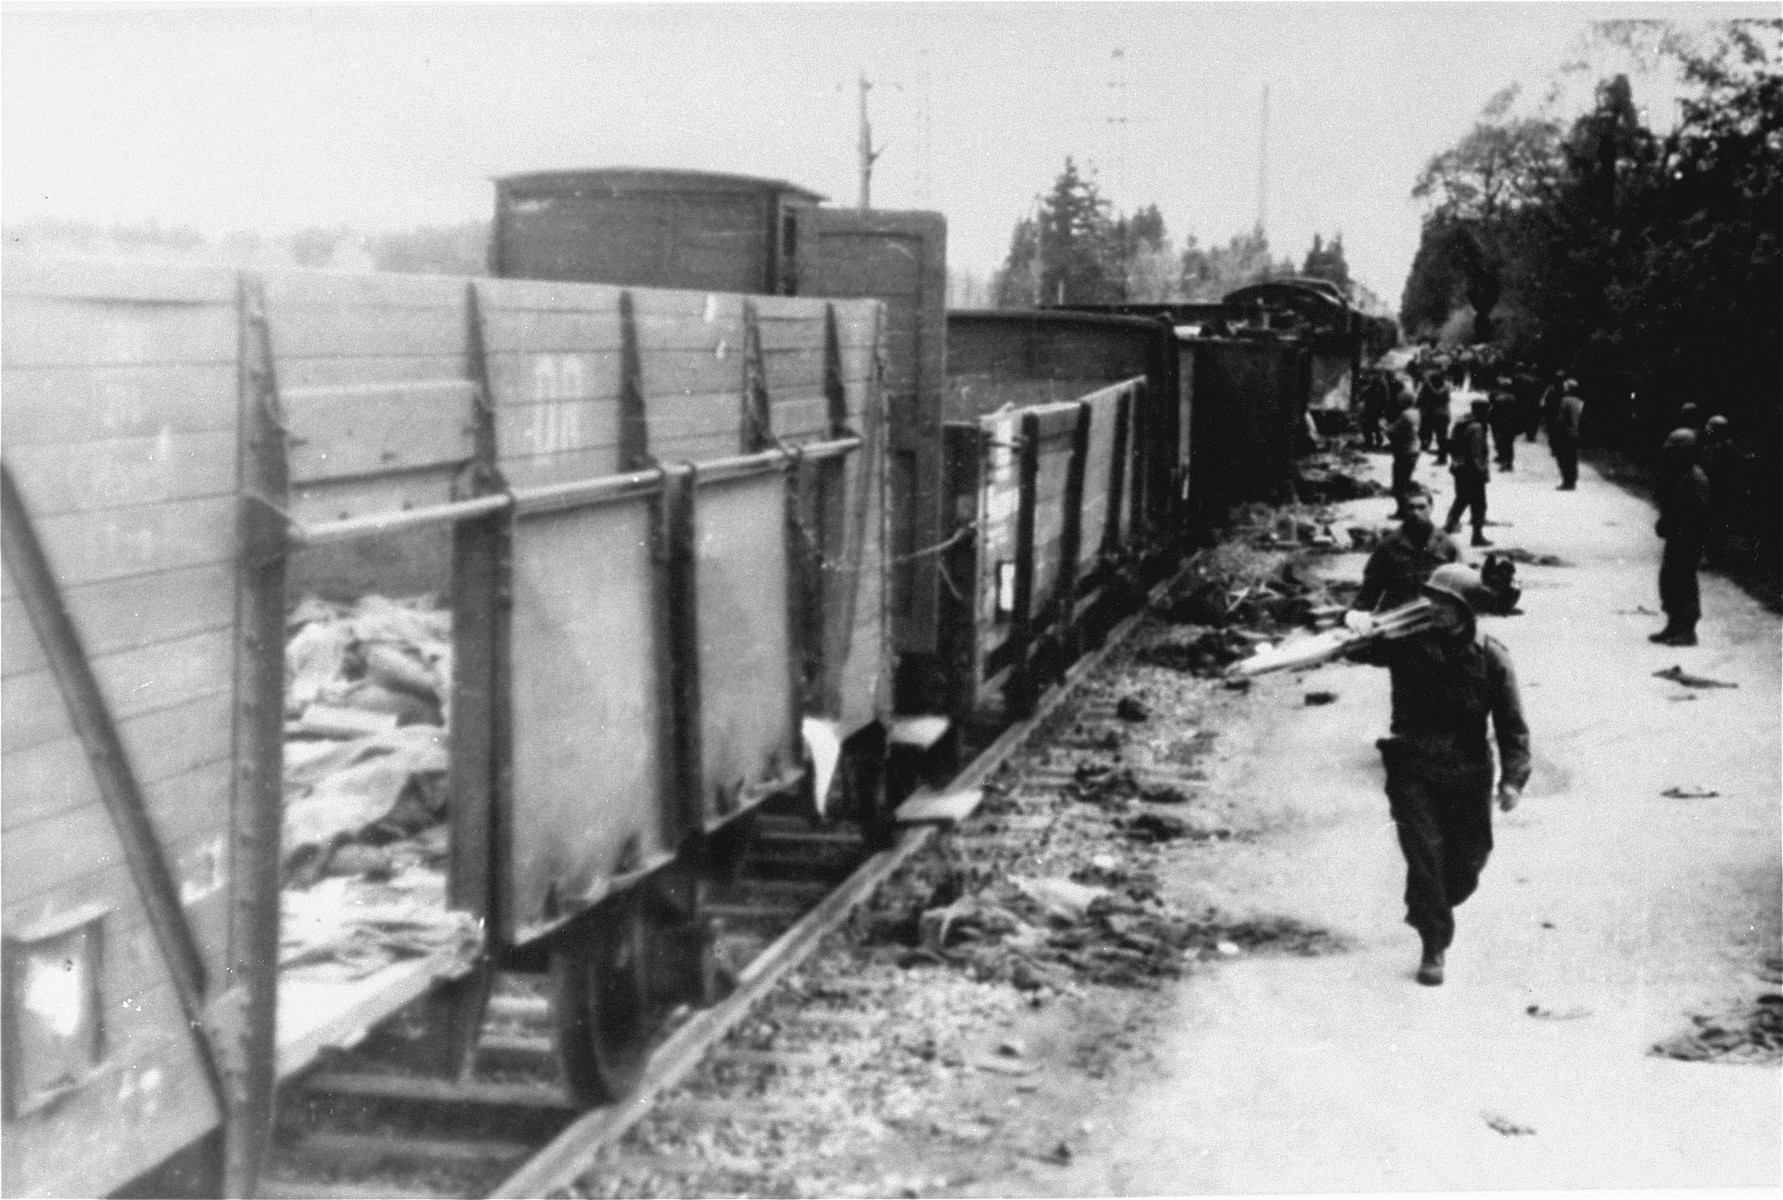 American soldiers, including a photographer carrying a camera and tripod, view the Dachau death train.